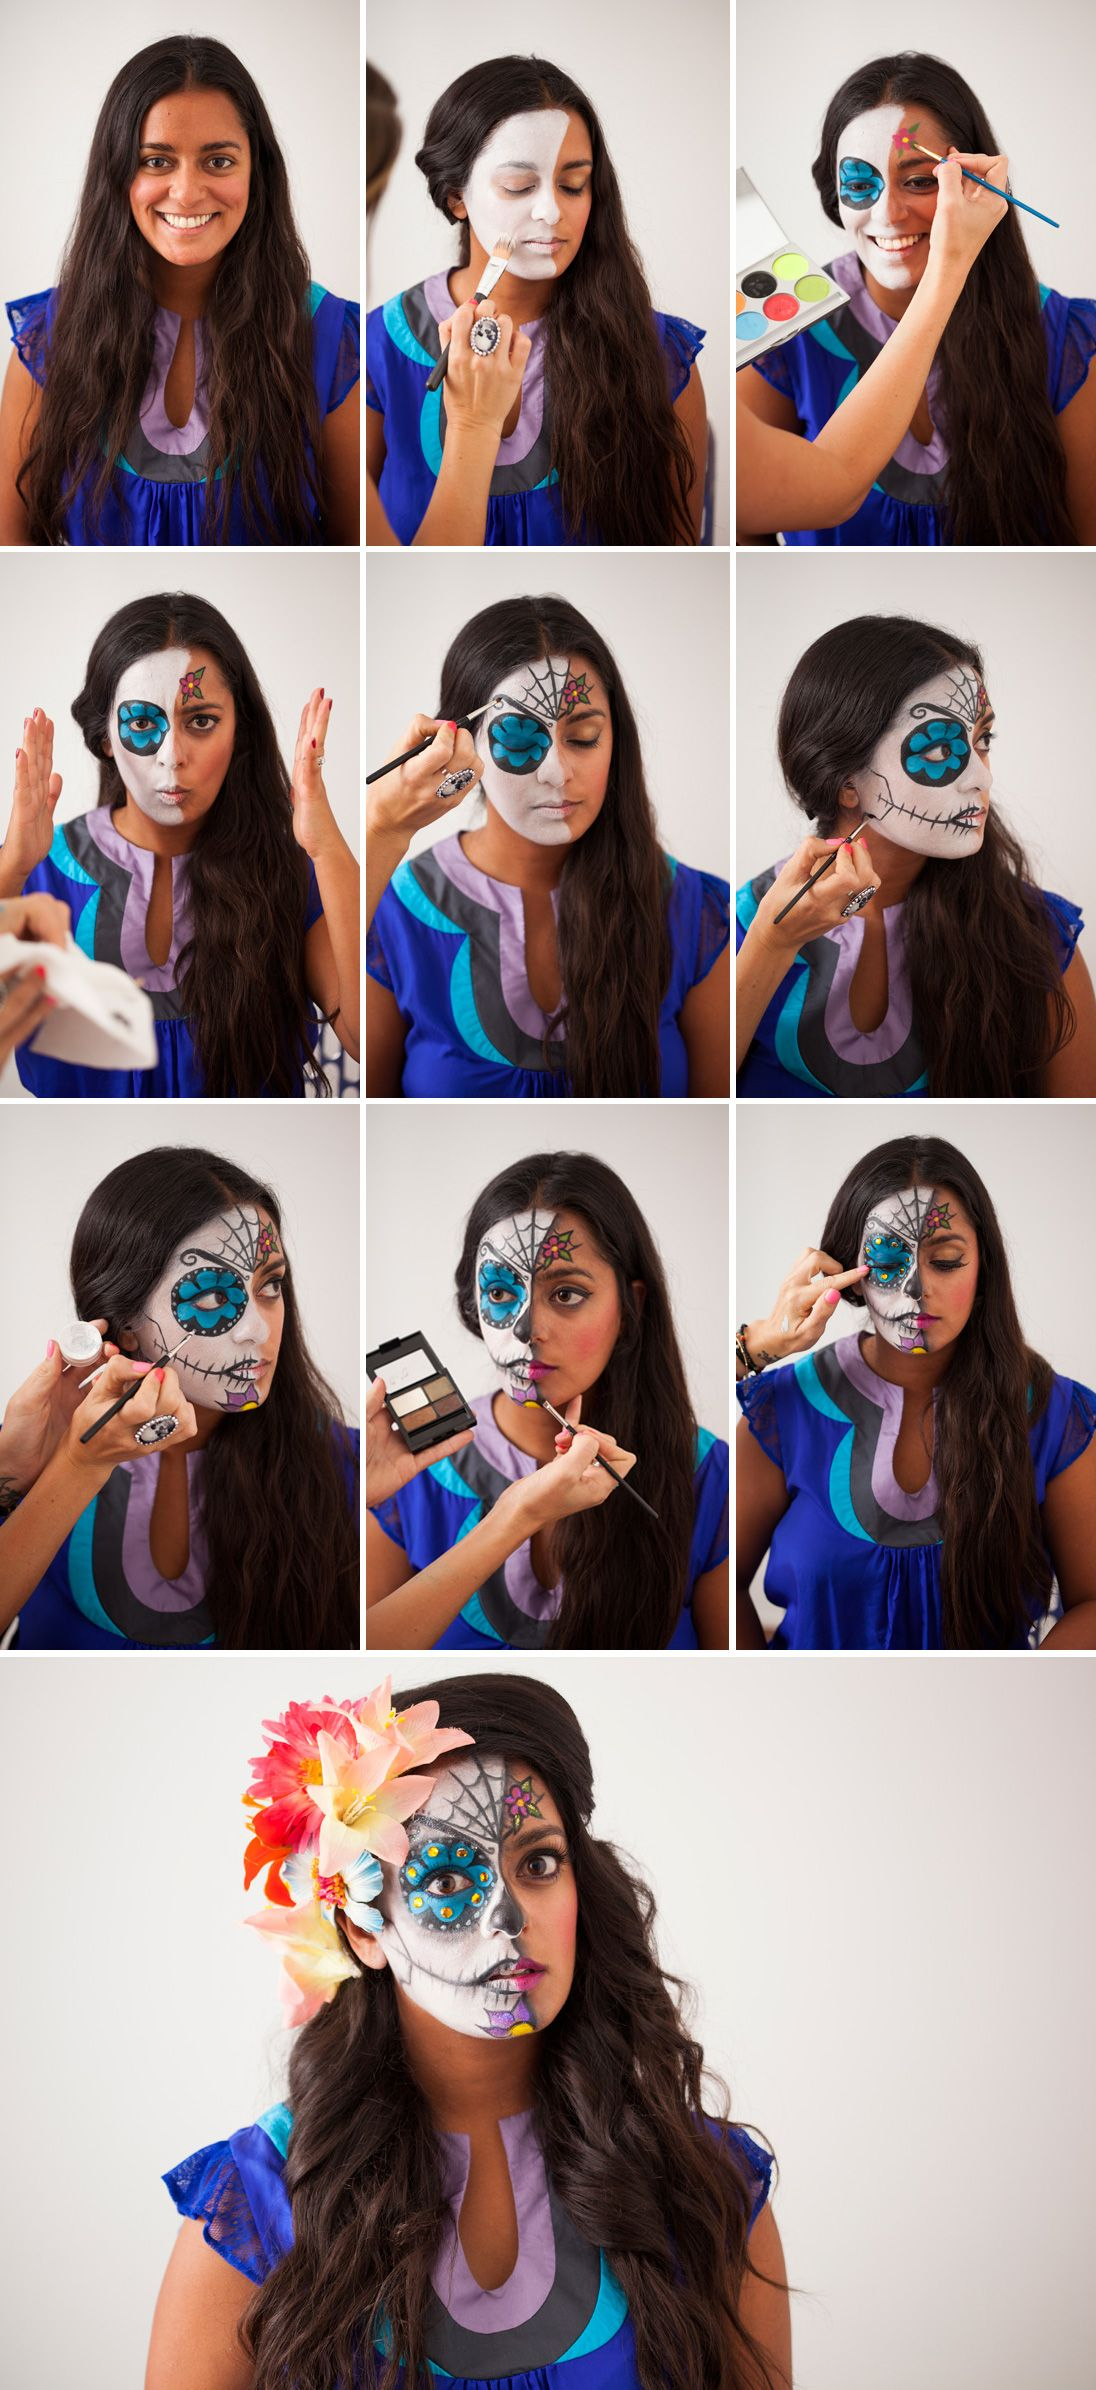 How to Paint a Sugar Skull… On Your Face! Sugar skull